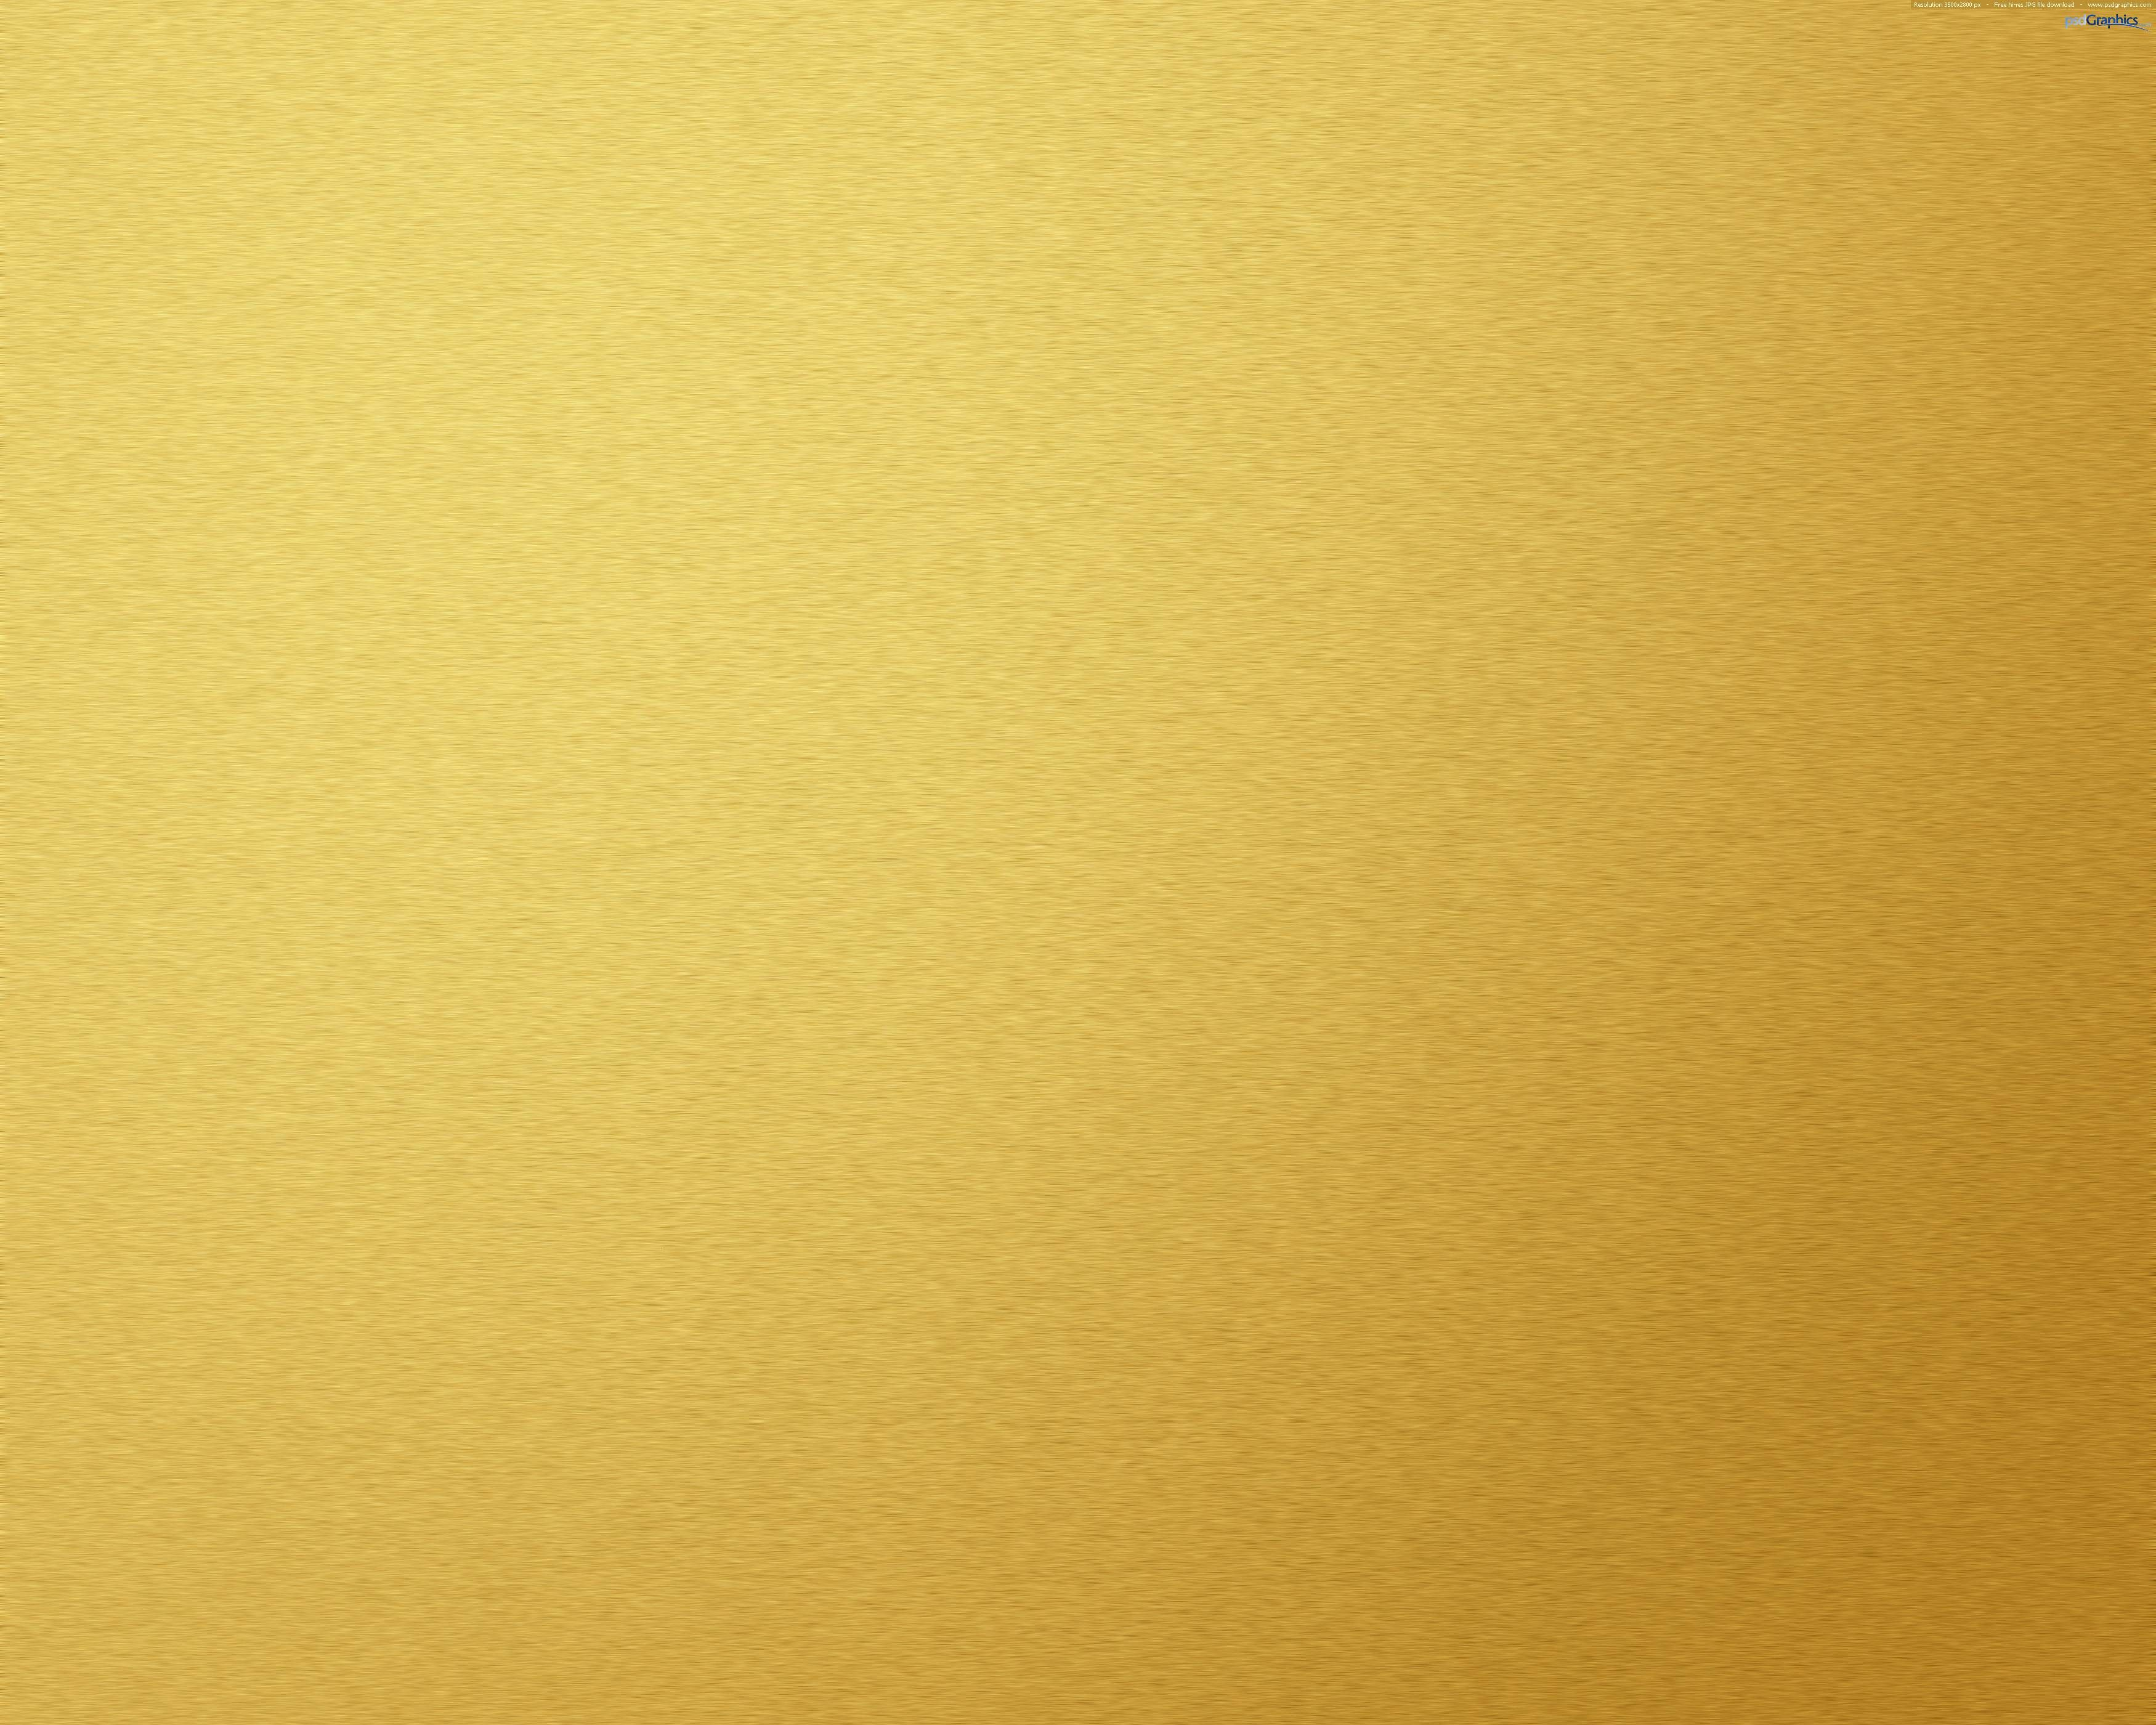 Gold Backgrounds - Wallpaper Cave | GOLDEN BACKGROUNDS ...